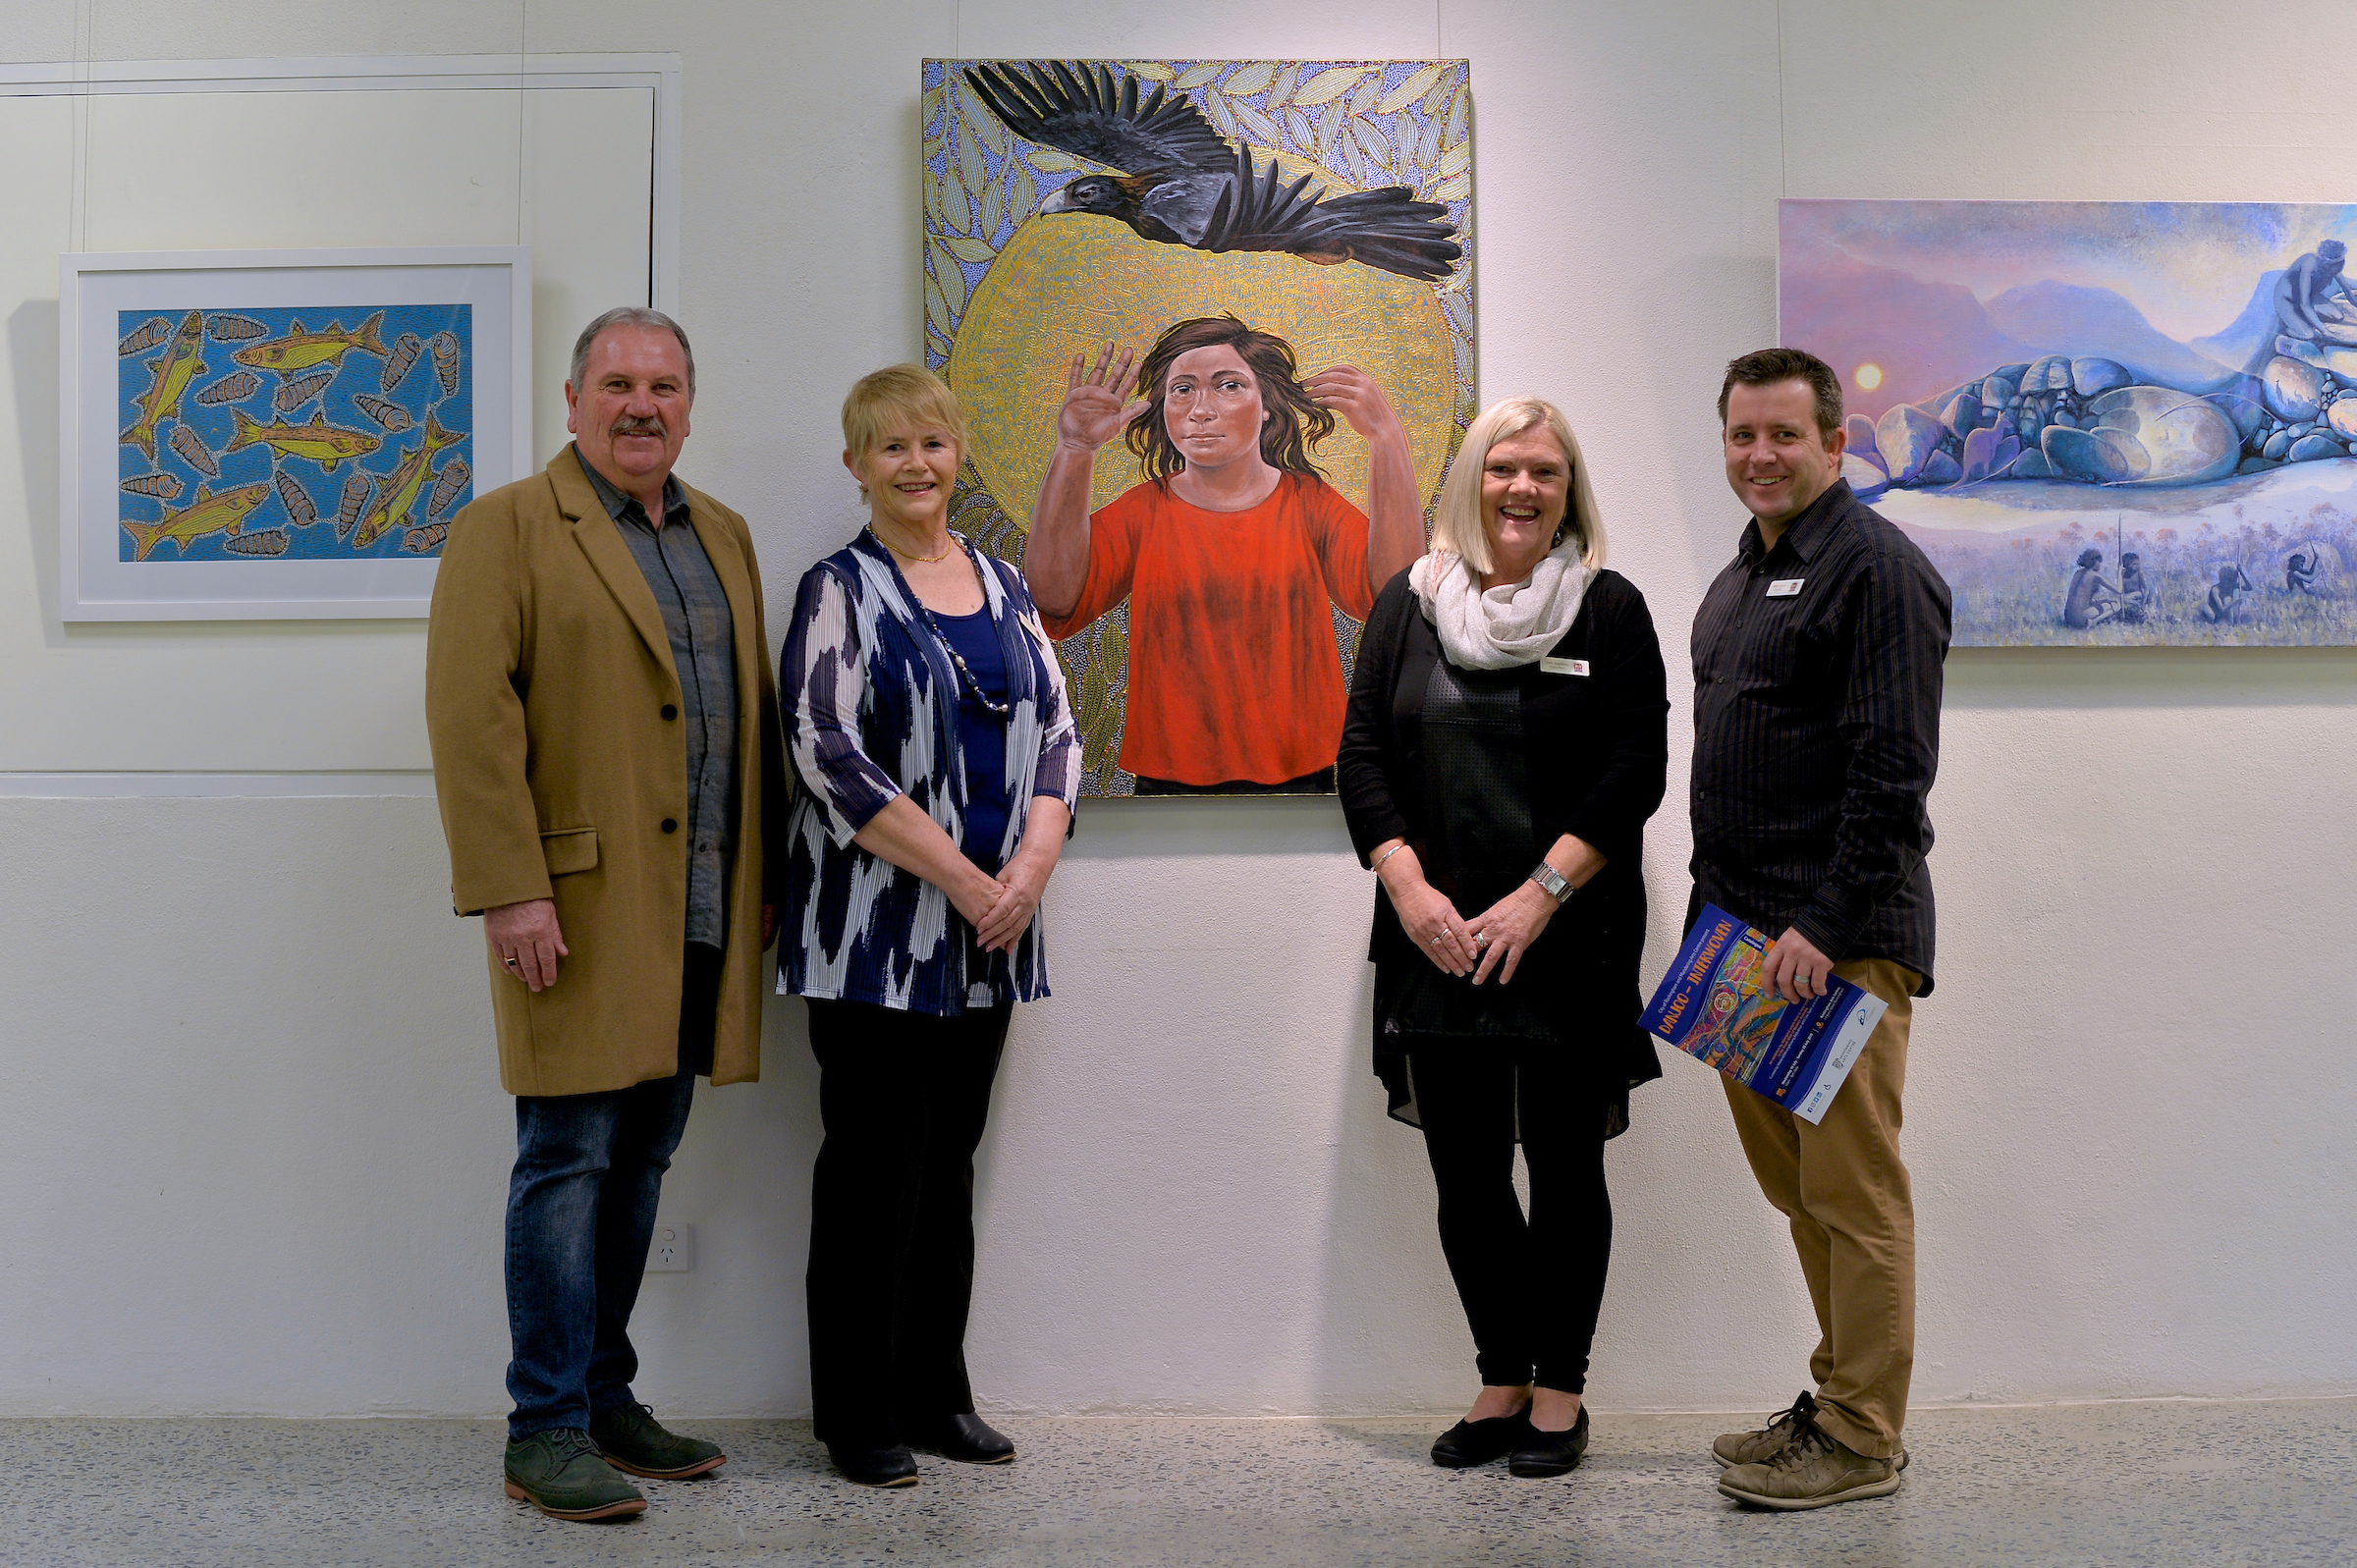 Mayor Barry Sammels, Councillor Joy Stewart, Deputy Mayor Deb Hamblin and Councillor Mark Jones in front of Julie Dowling's  Mardubaya Irra (Growing Language)